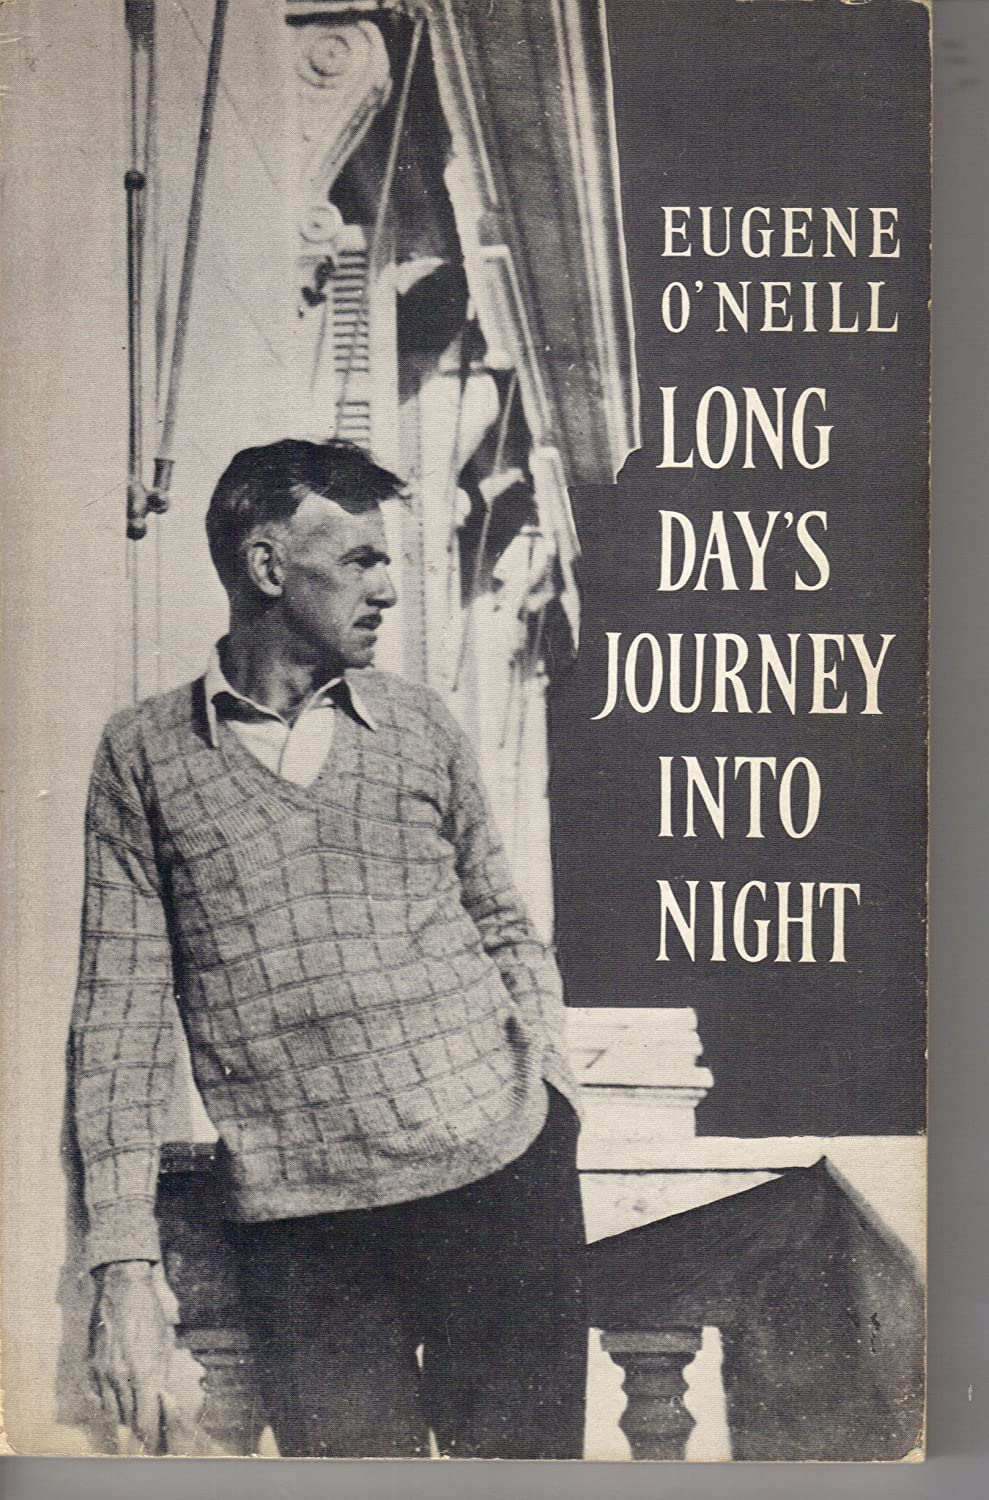 an analysis of long days journey into night a play by eugene o neill A summary of analysis in eugene o'neill's long day's journey into night learn exactly what happened in this chapter, scene, or section of long day's journey into night and what it means perfect for acing essays, tests, and quizzes, as well as for writing lesson plans.